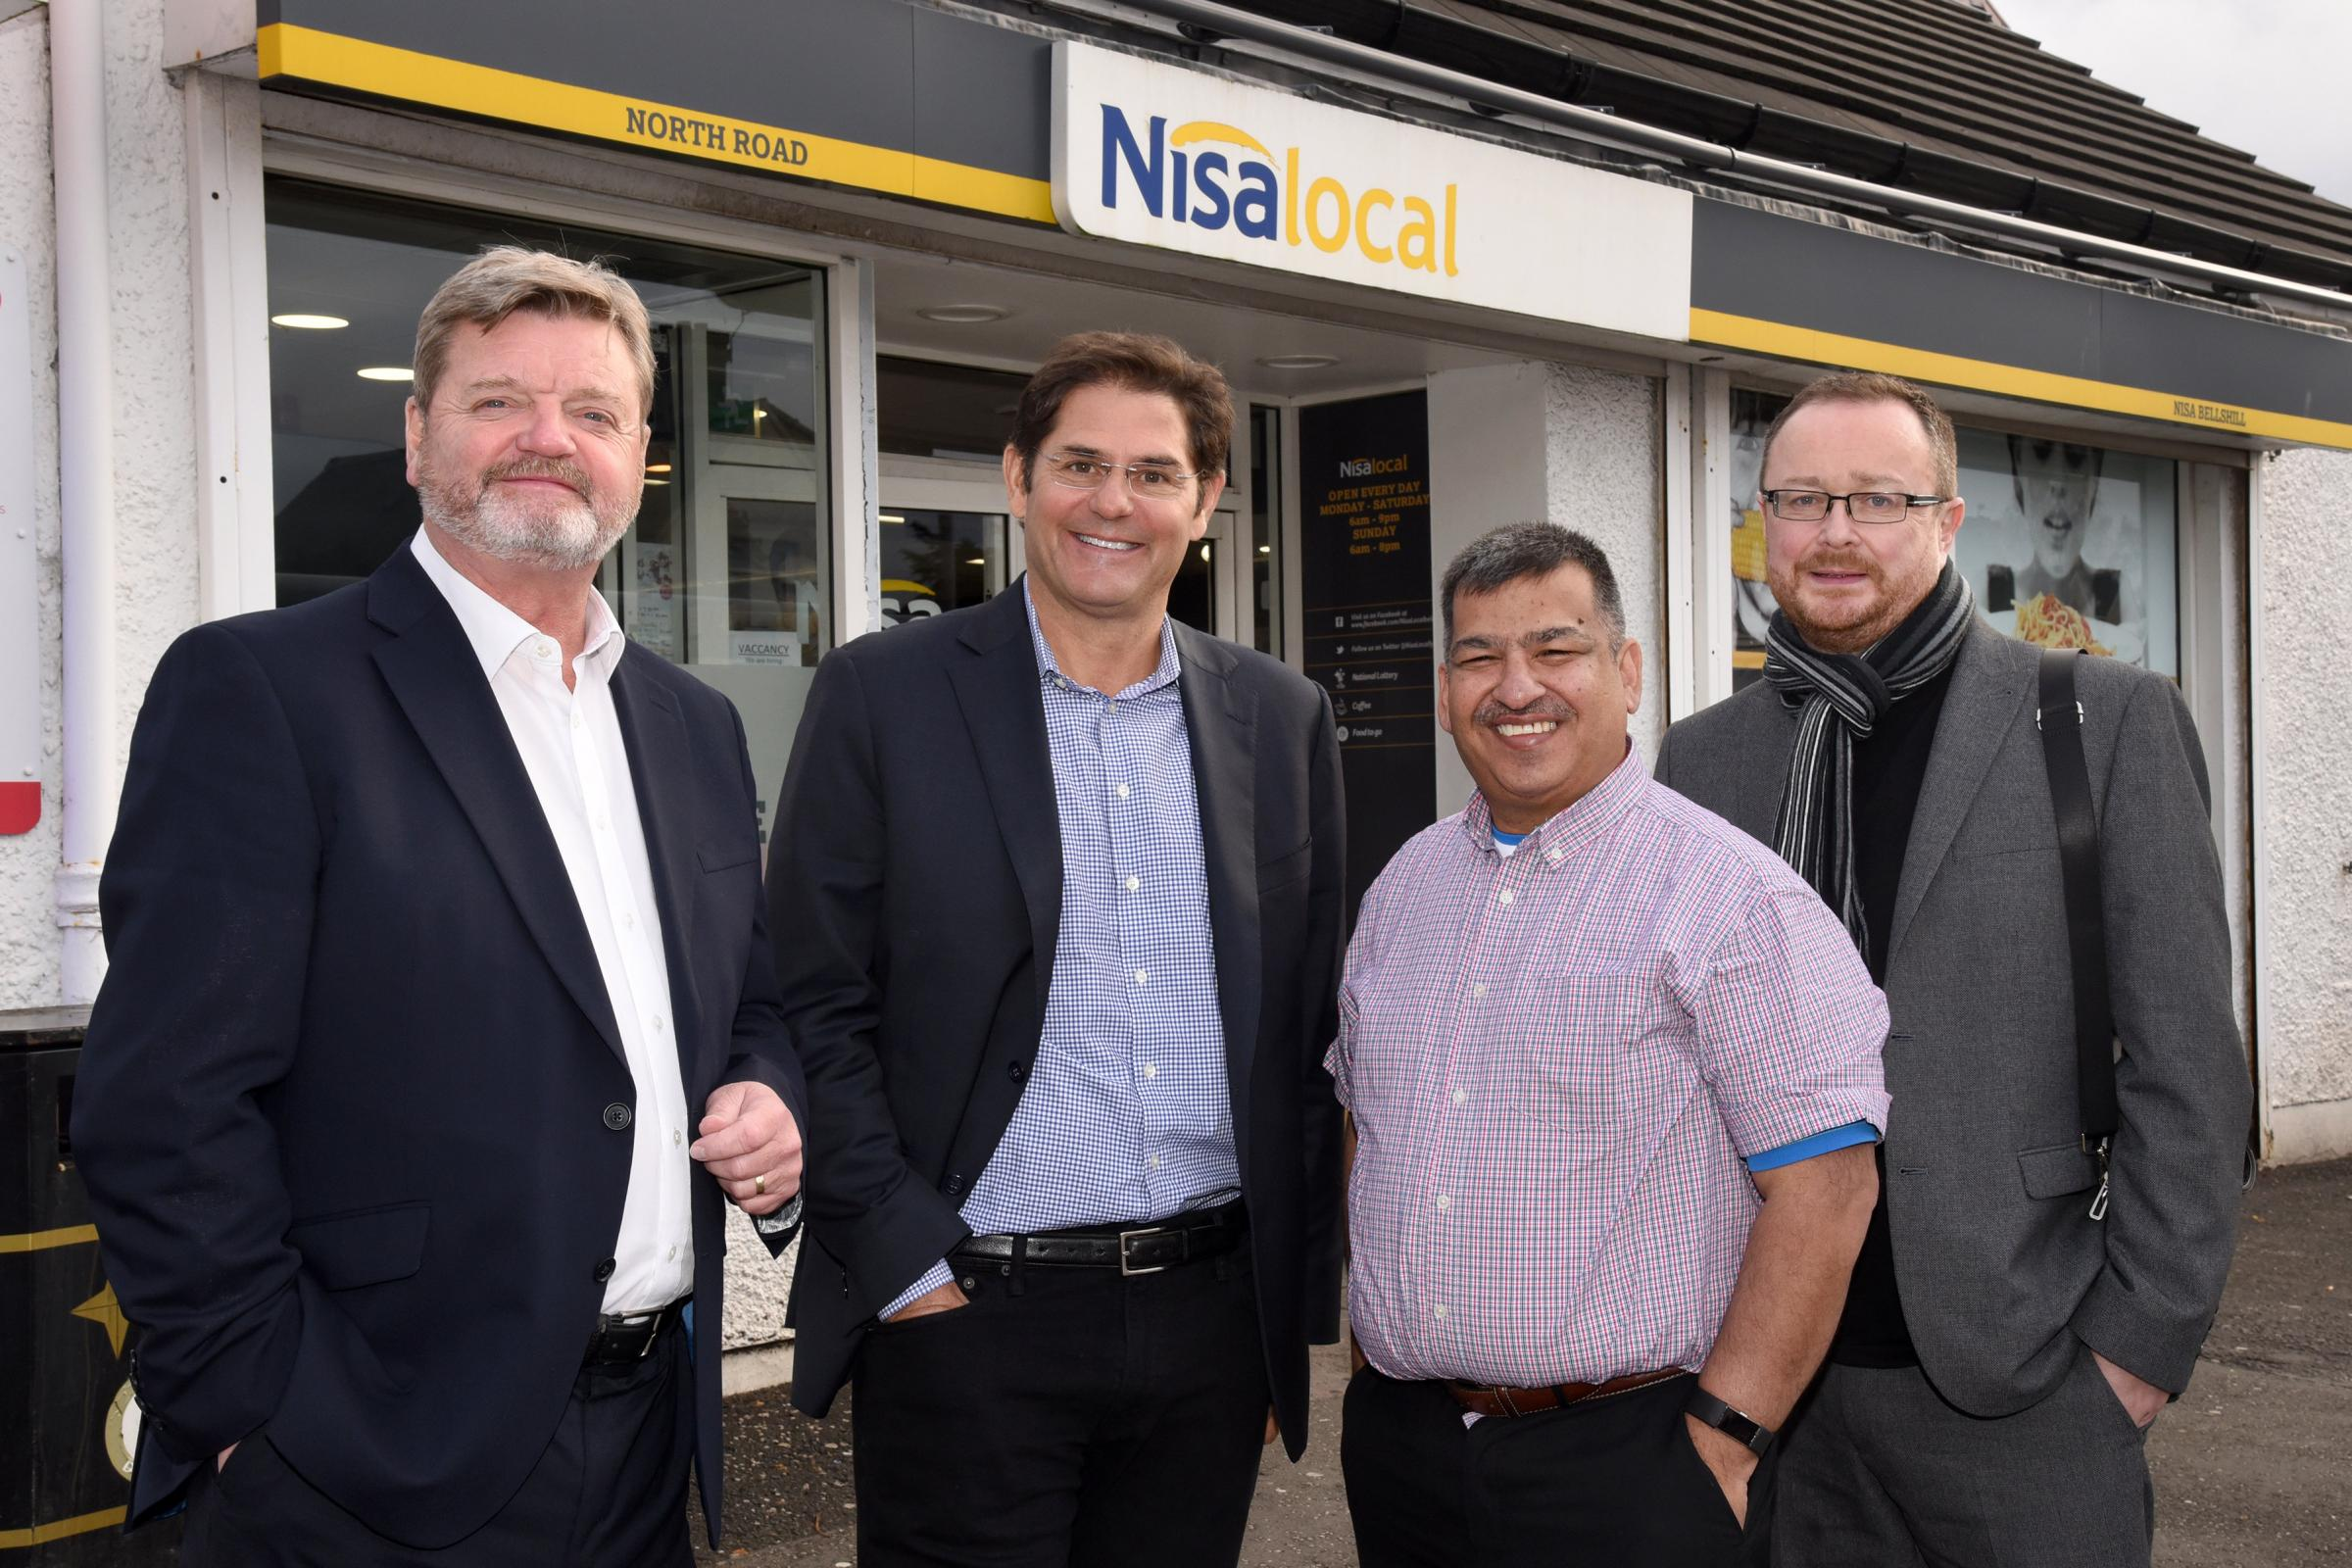 From left: Hugh Booth of Viridor, Bob Lincoln, Envipco president, Abdul Majid, Nisa Local owner and Dr John Lee, of the Scottish Grocers Federation